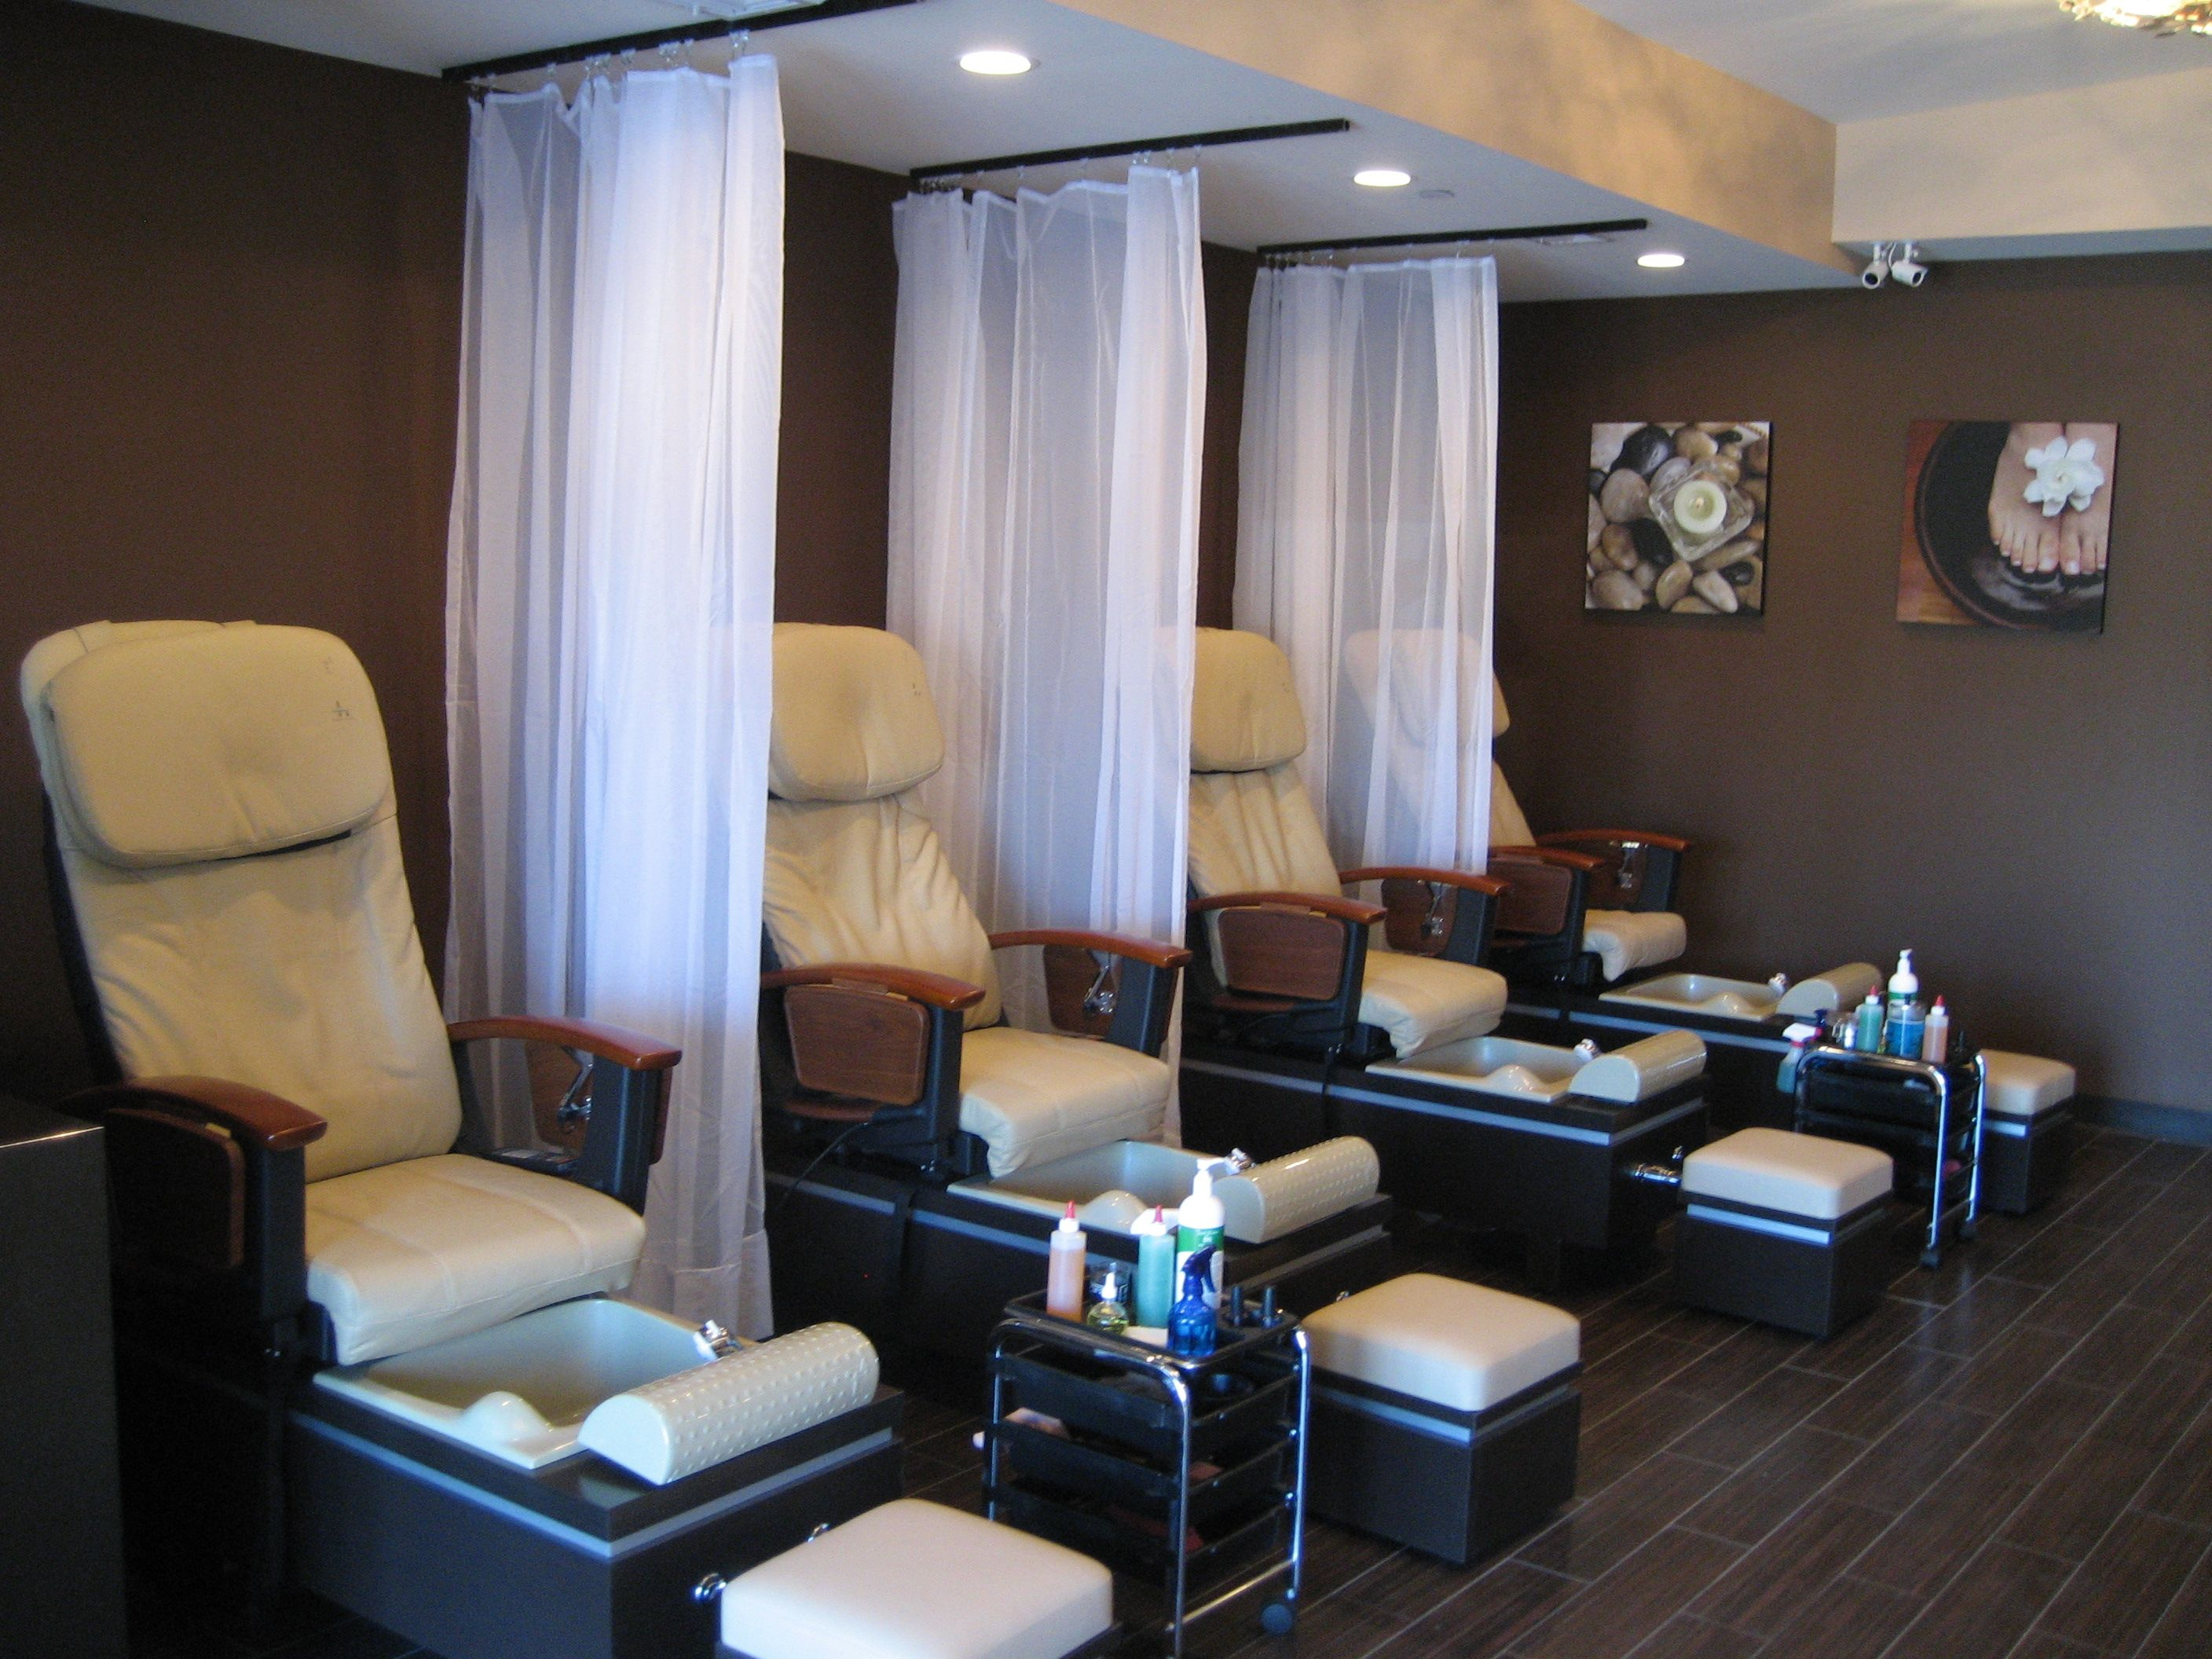 Small nail salon interior designs google search misc - Nail salons close by ...